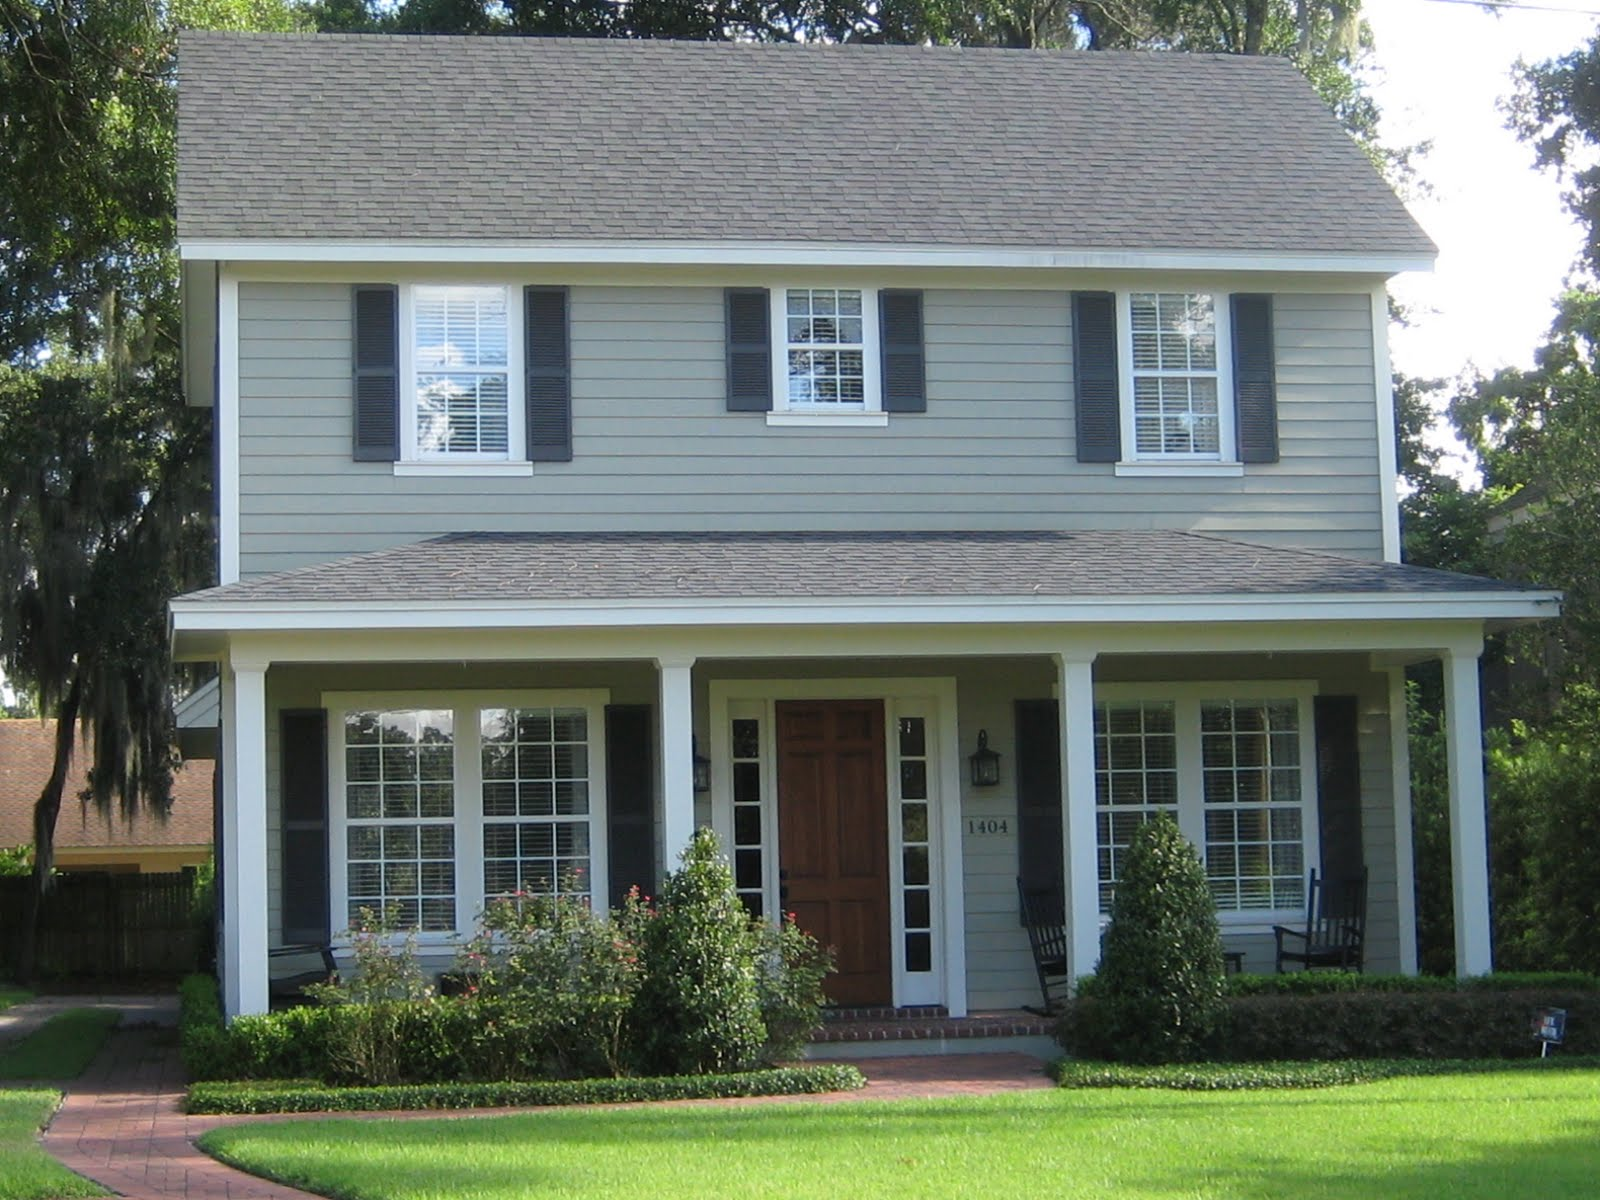 Green street exterior house color contenders - Exterior house colors brown ...